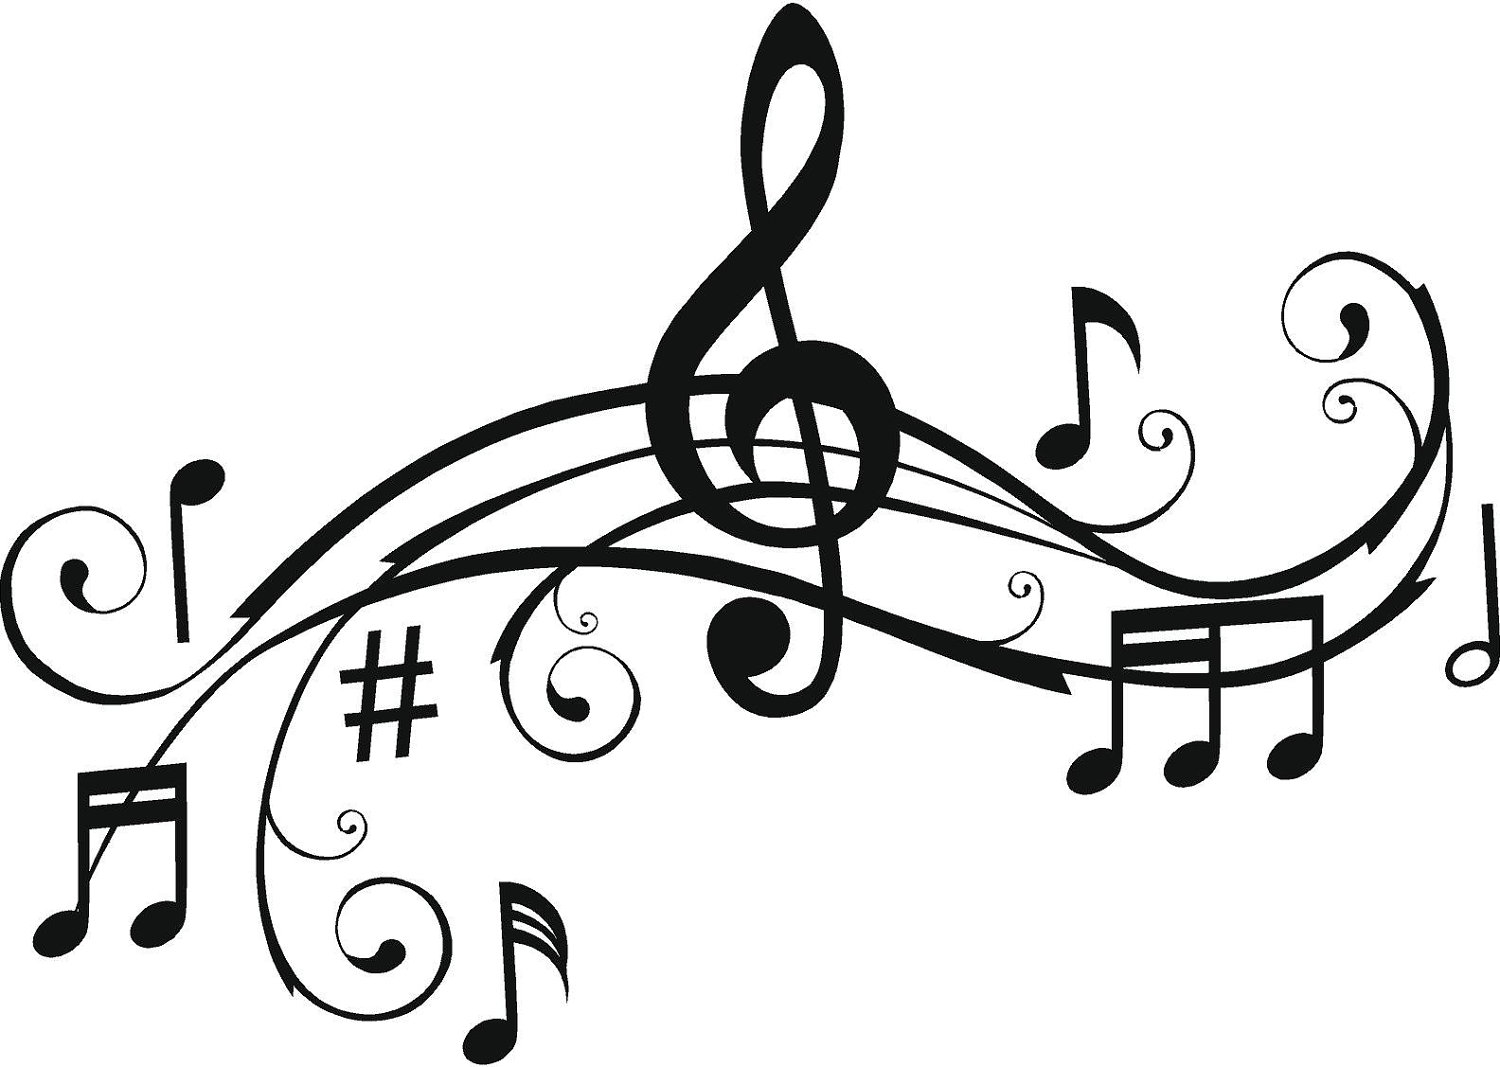 Slobbery image with regard to printable music notes symbols